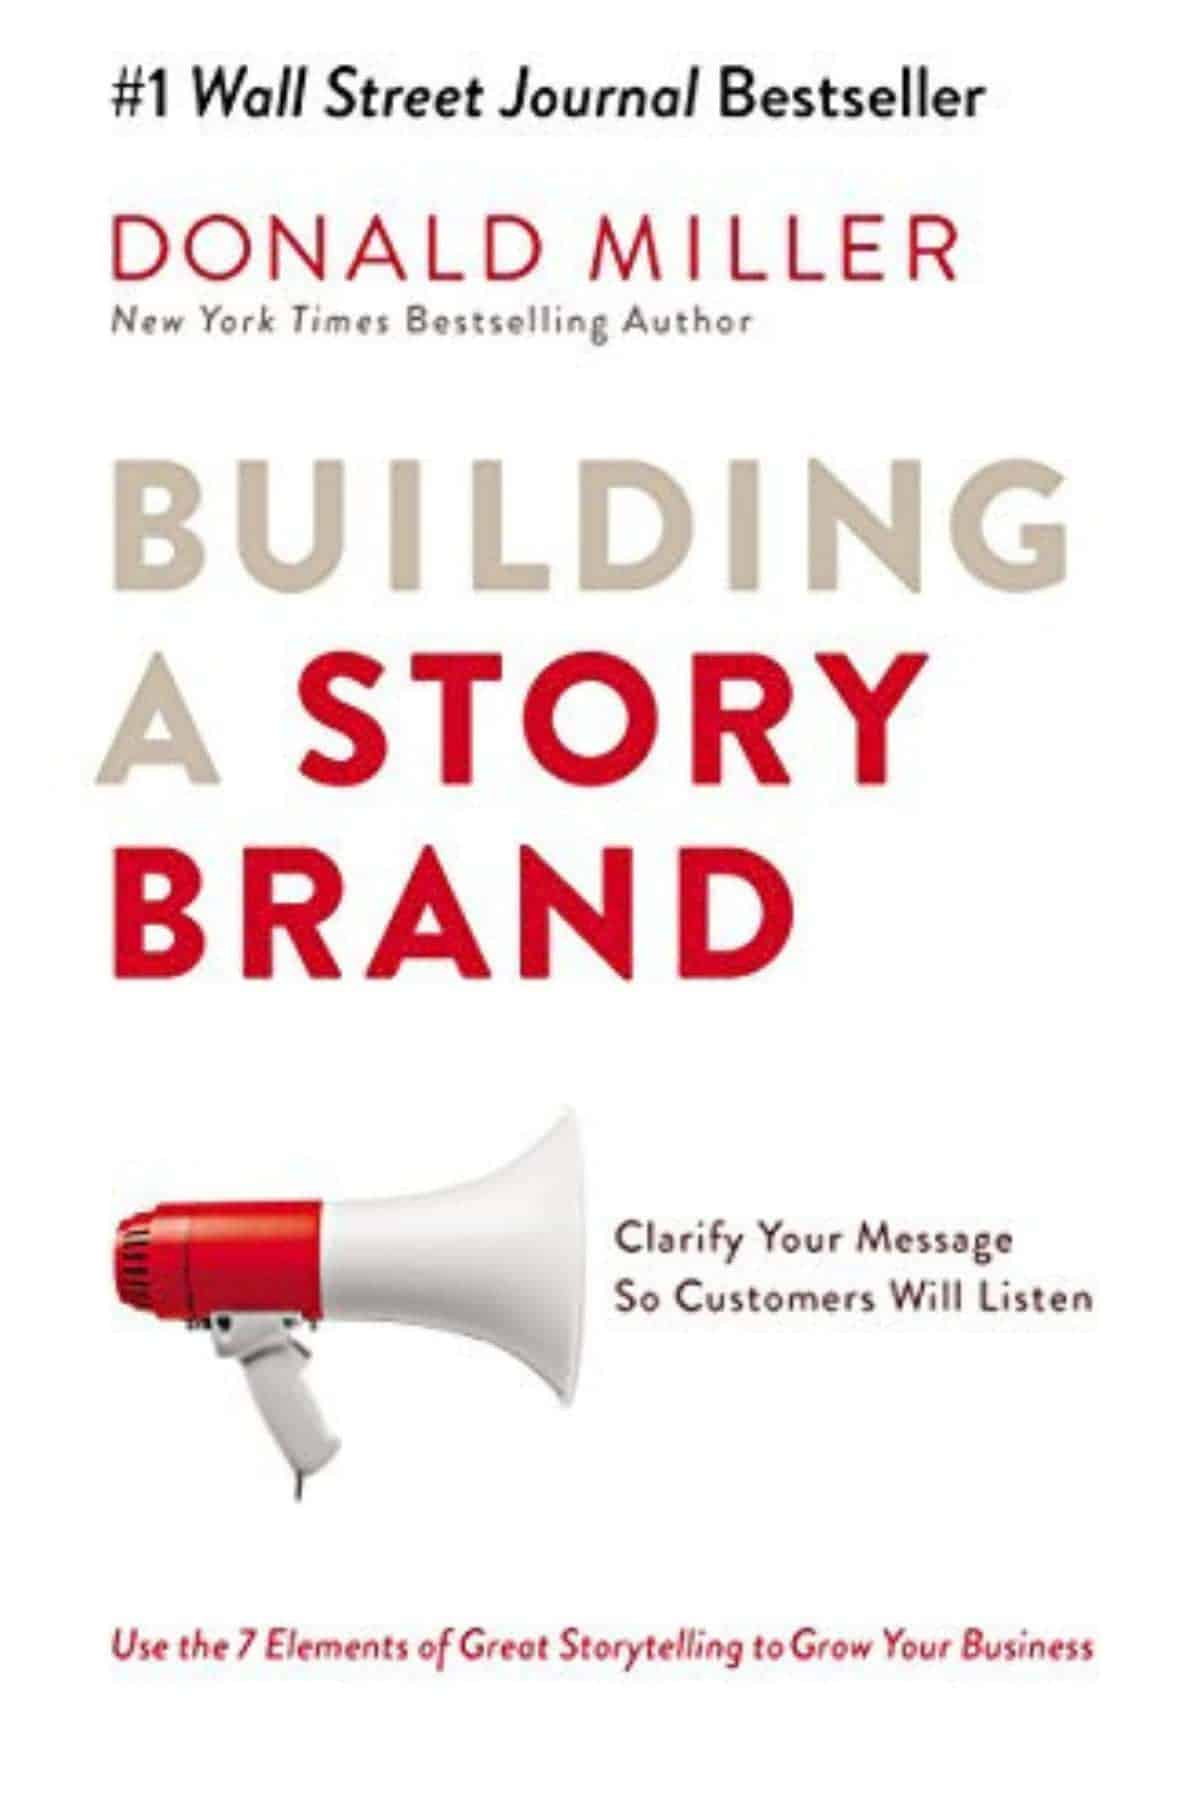 Building a StoryBrand: Clarify Your Message So Customers Will Listen by Donald Miller ($9.99) | Amazon's Best Selling Tech Kindle eBooks